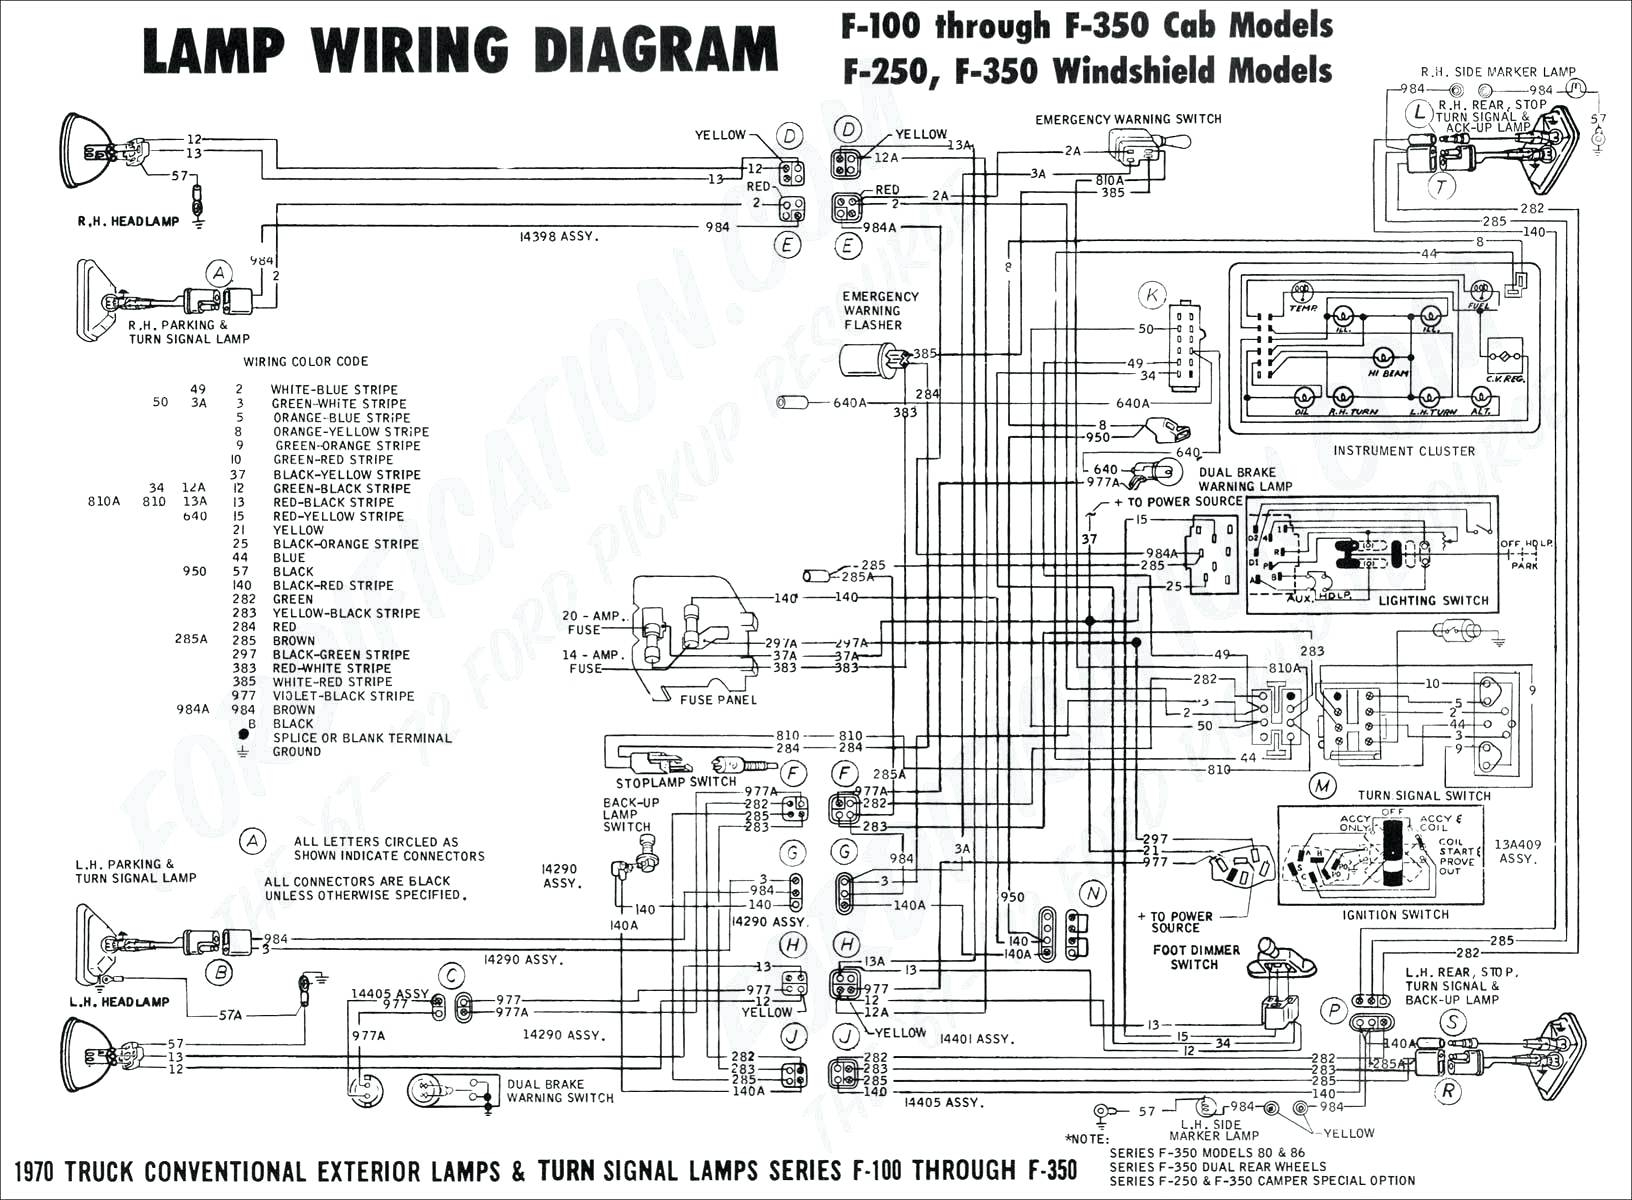 2002 Dodge Dakota Trailer Wiring Harness from wholefoodsonabudget.com